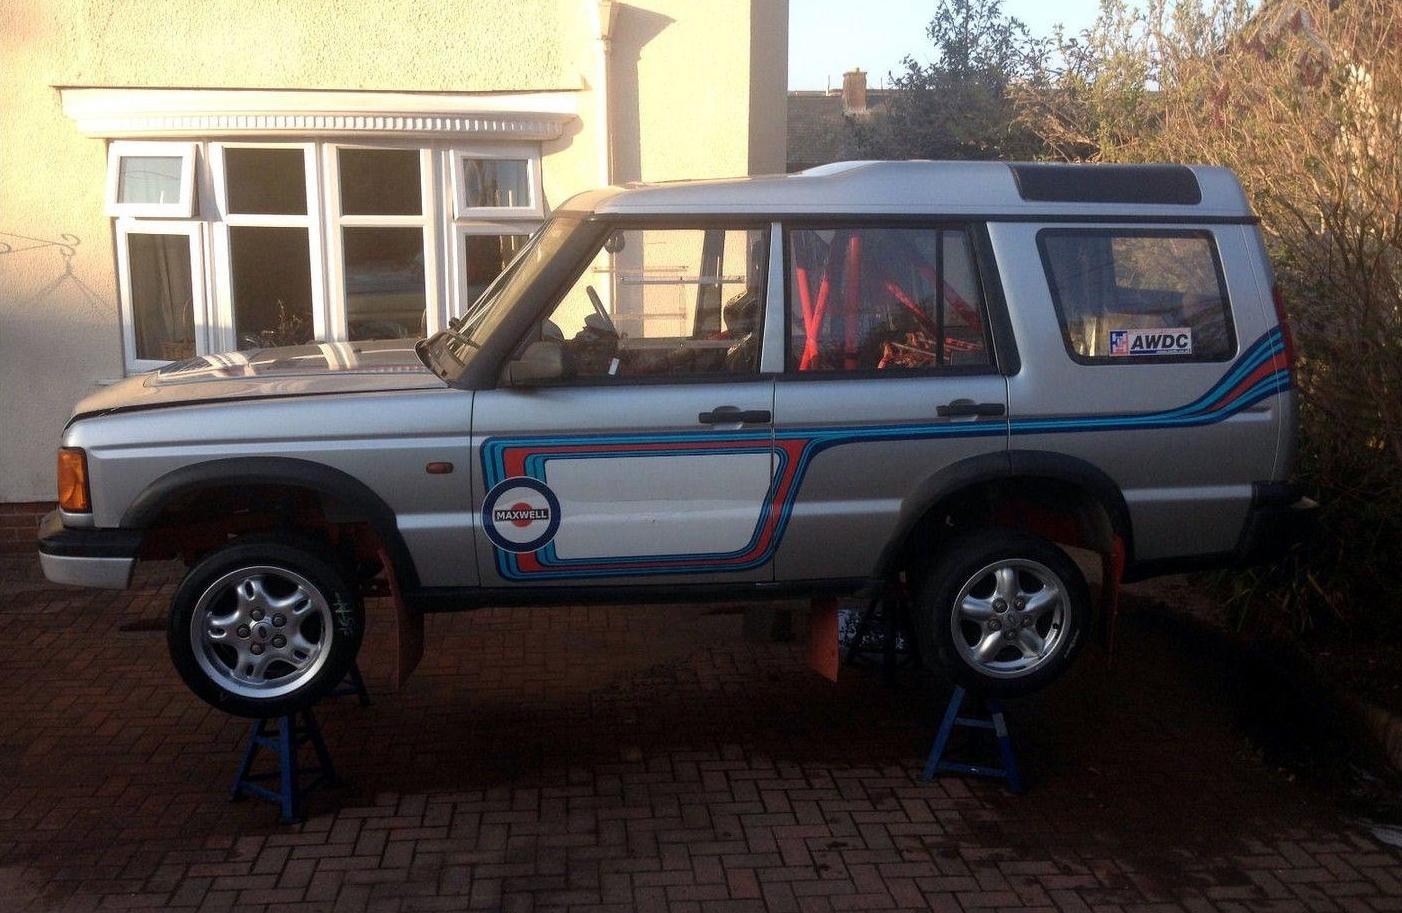 For Sale: Land Rover Discovery 2 with BMW M3 engine